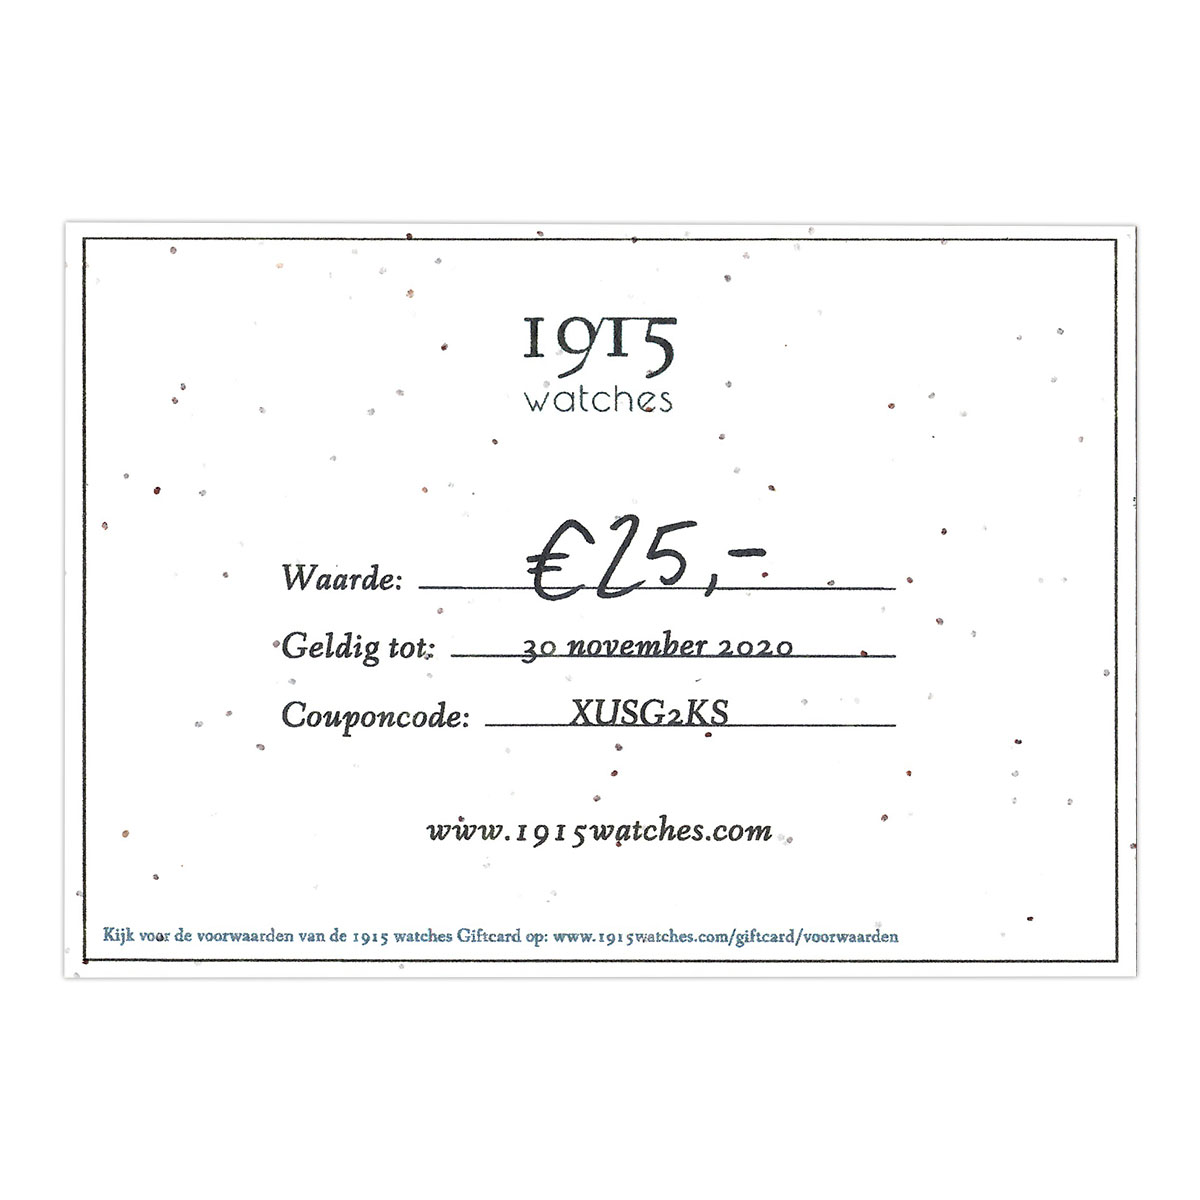 1915 watches - 1915 watches houten horloge giftcard